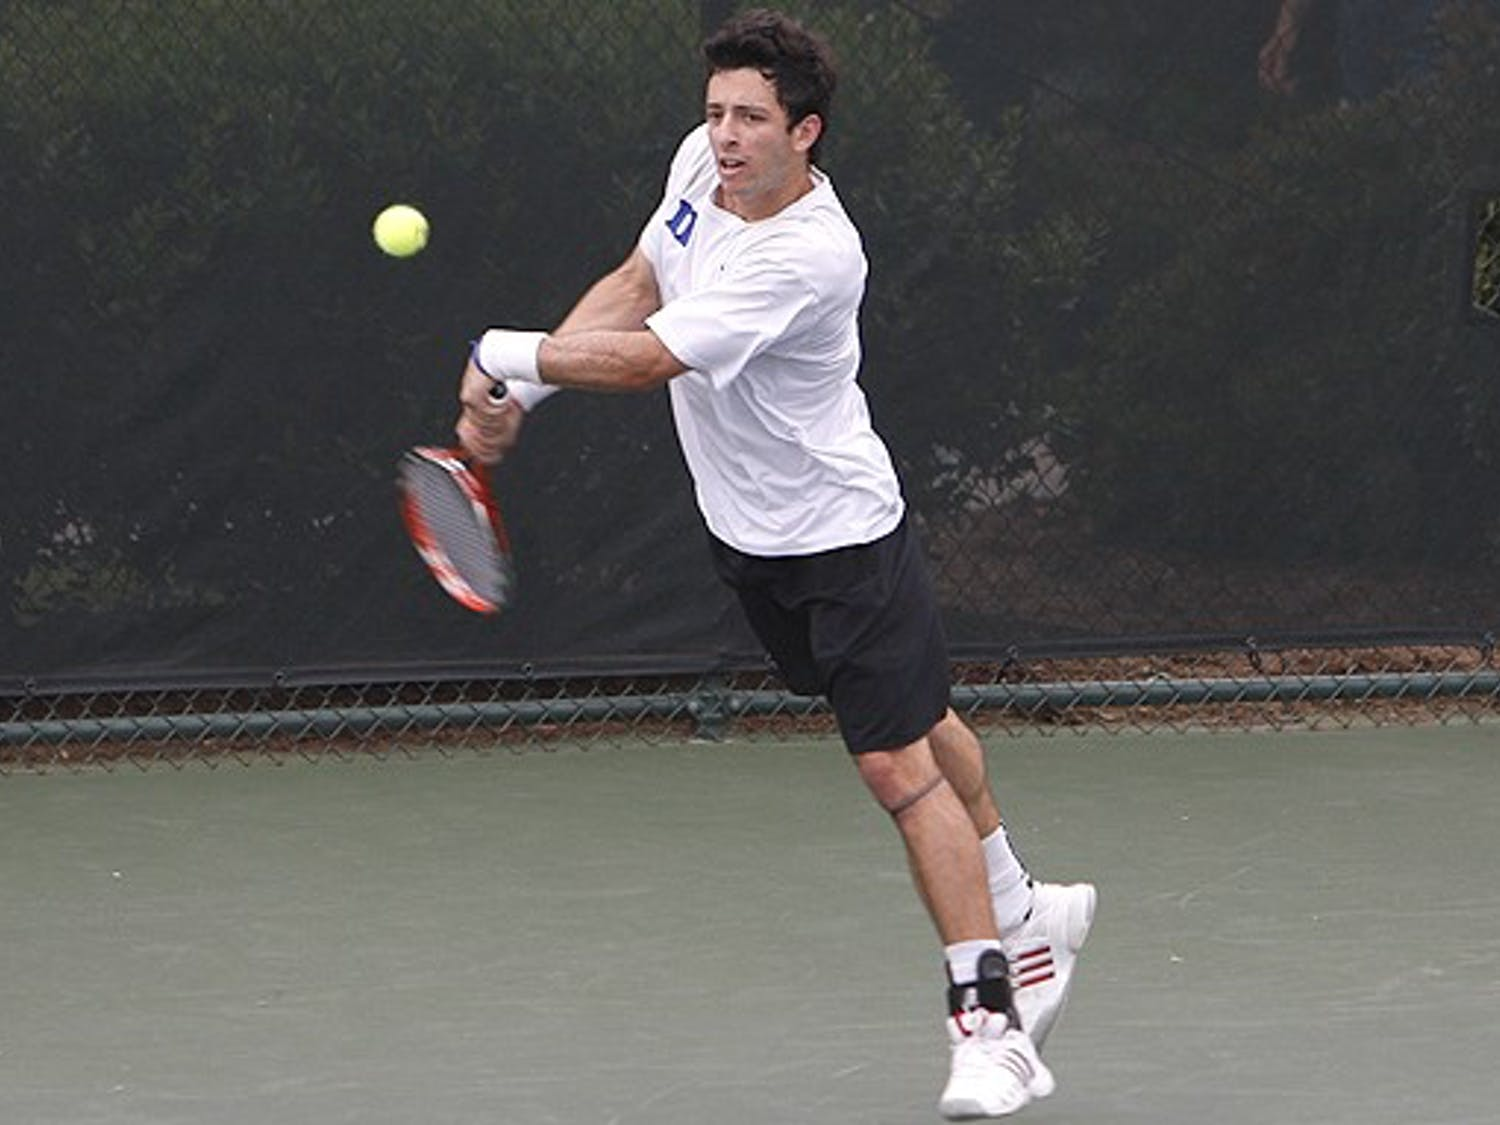 Freshman Henrique Cunha's 18th consecutive win at No. 1 singles, against Virginia's Michael Shabaz, kept his undefeated conference record intact.